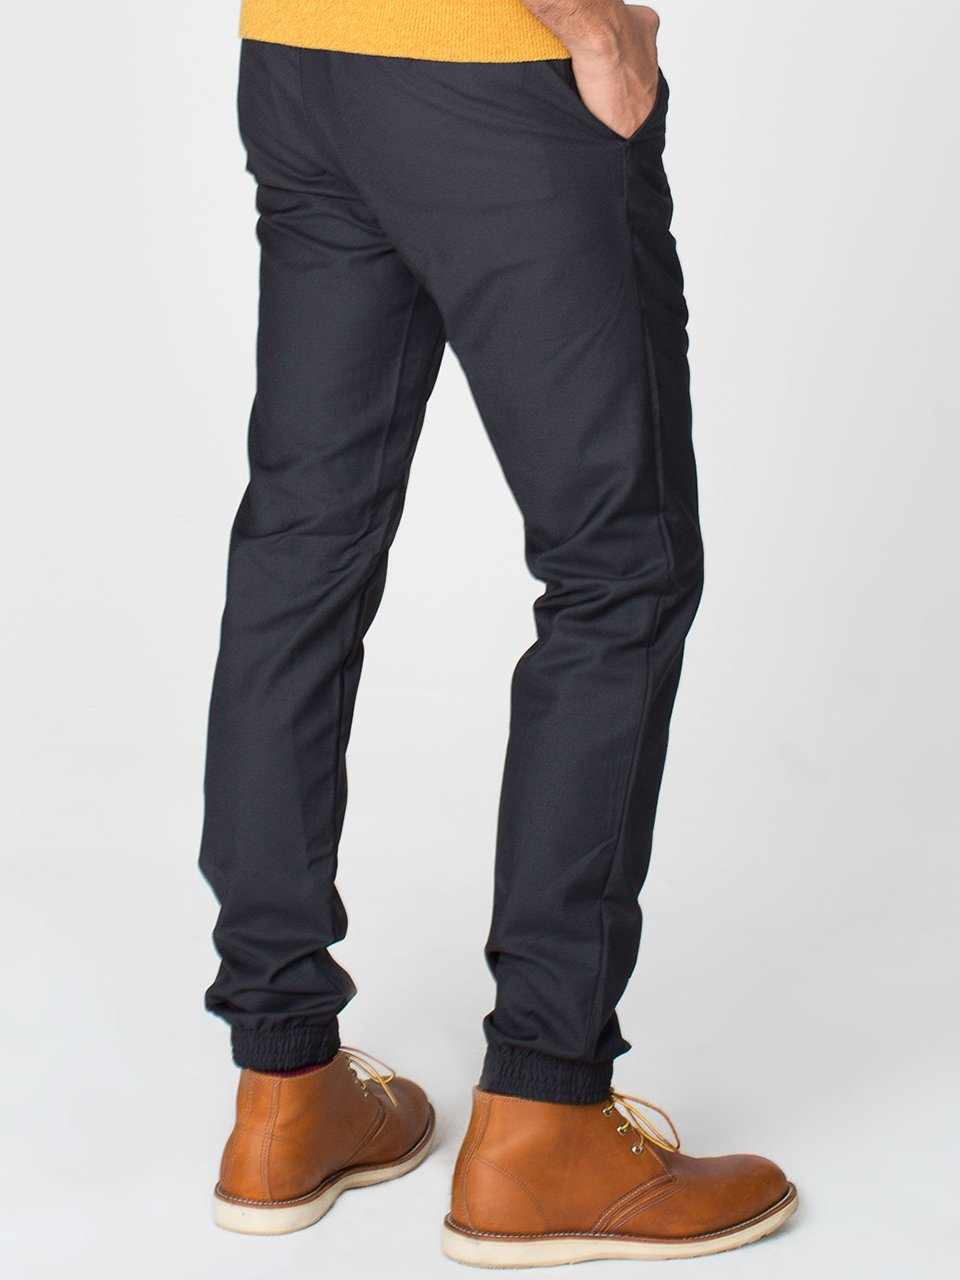 Viscose Twill Welt Pocket Pant